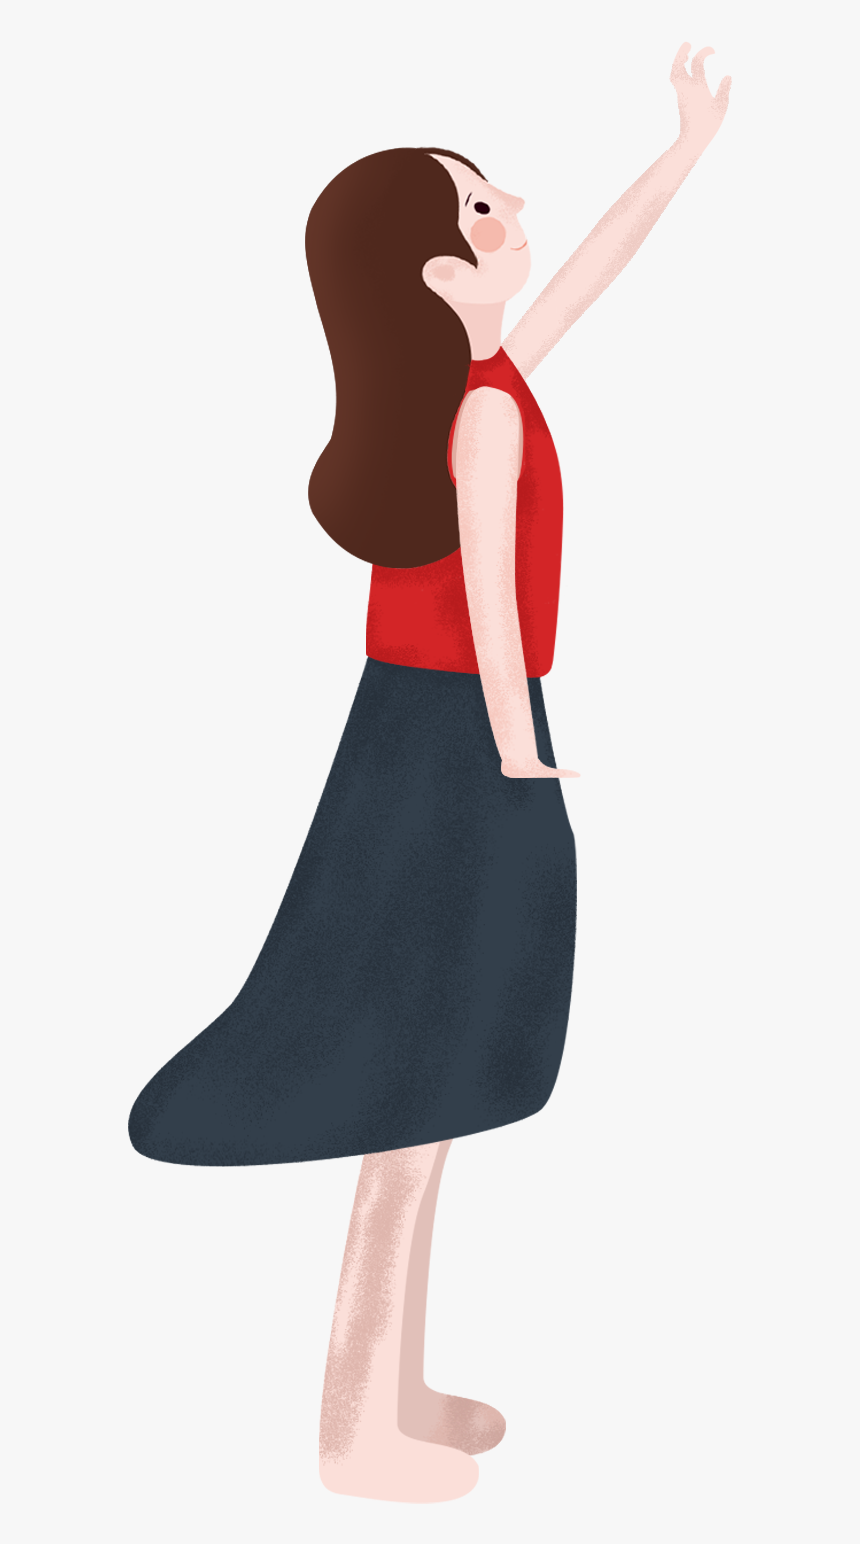 Animated Skirt transparent girl with long hair clipart - pencil skirt, hd